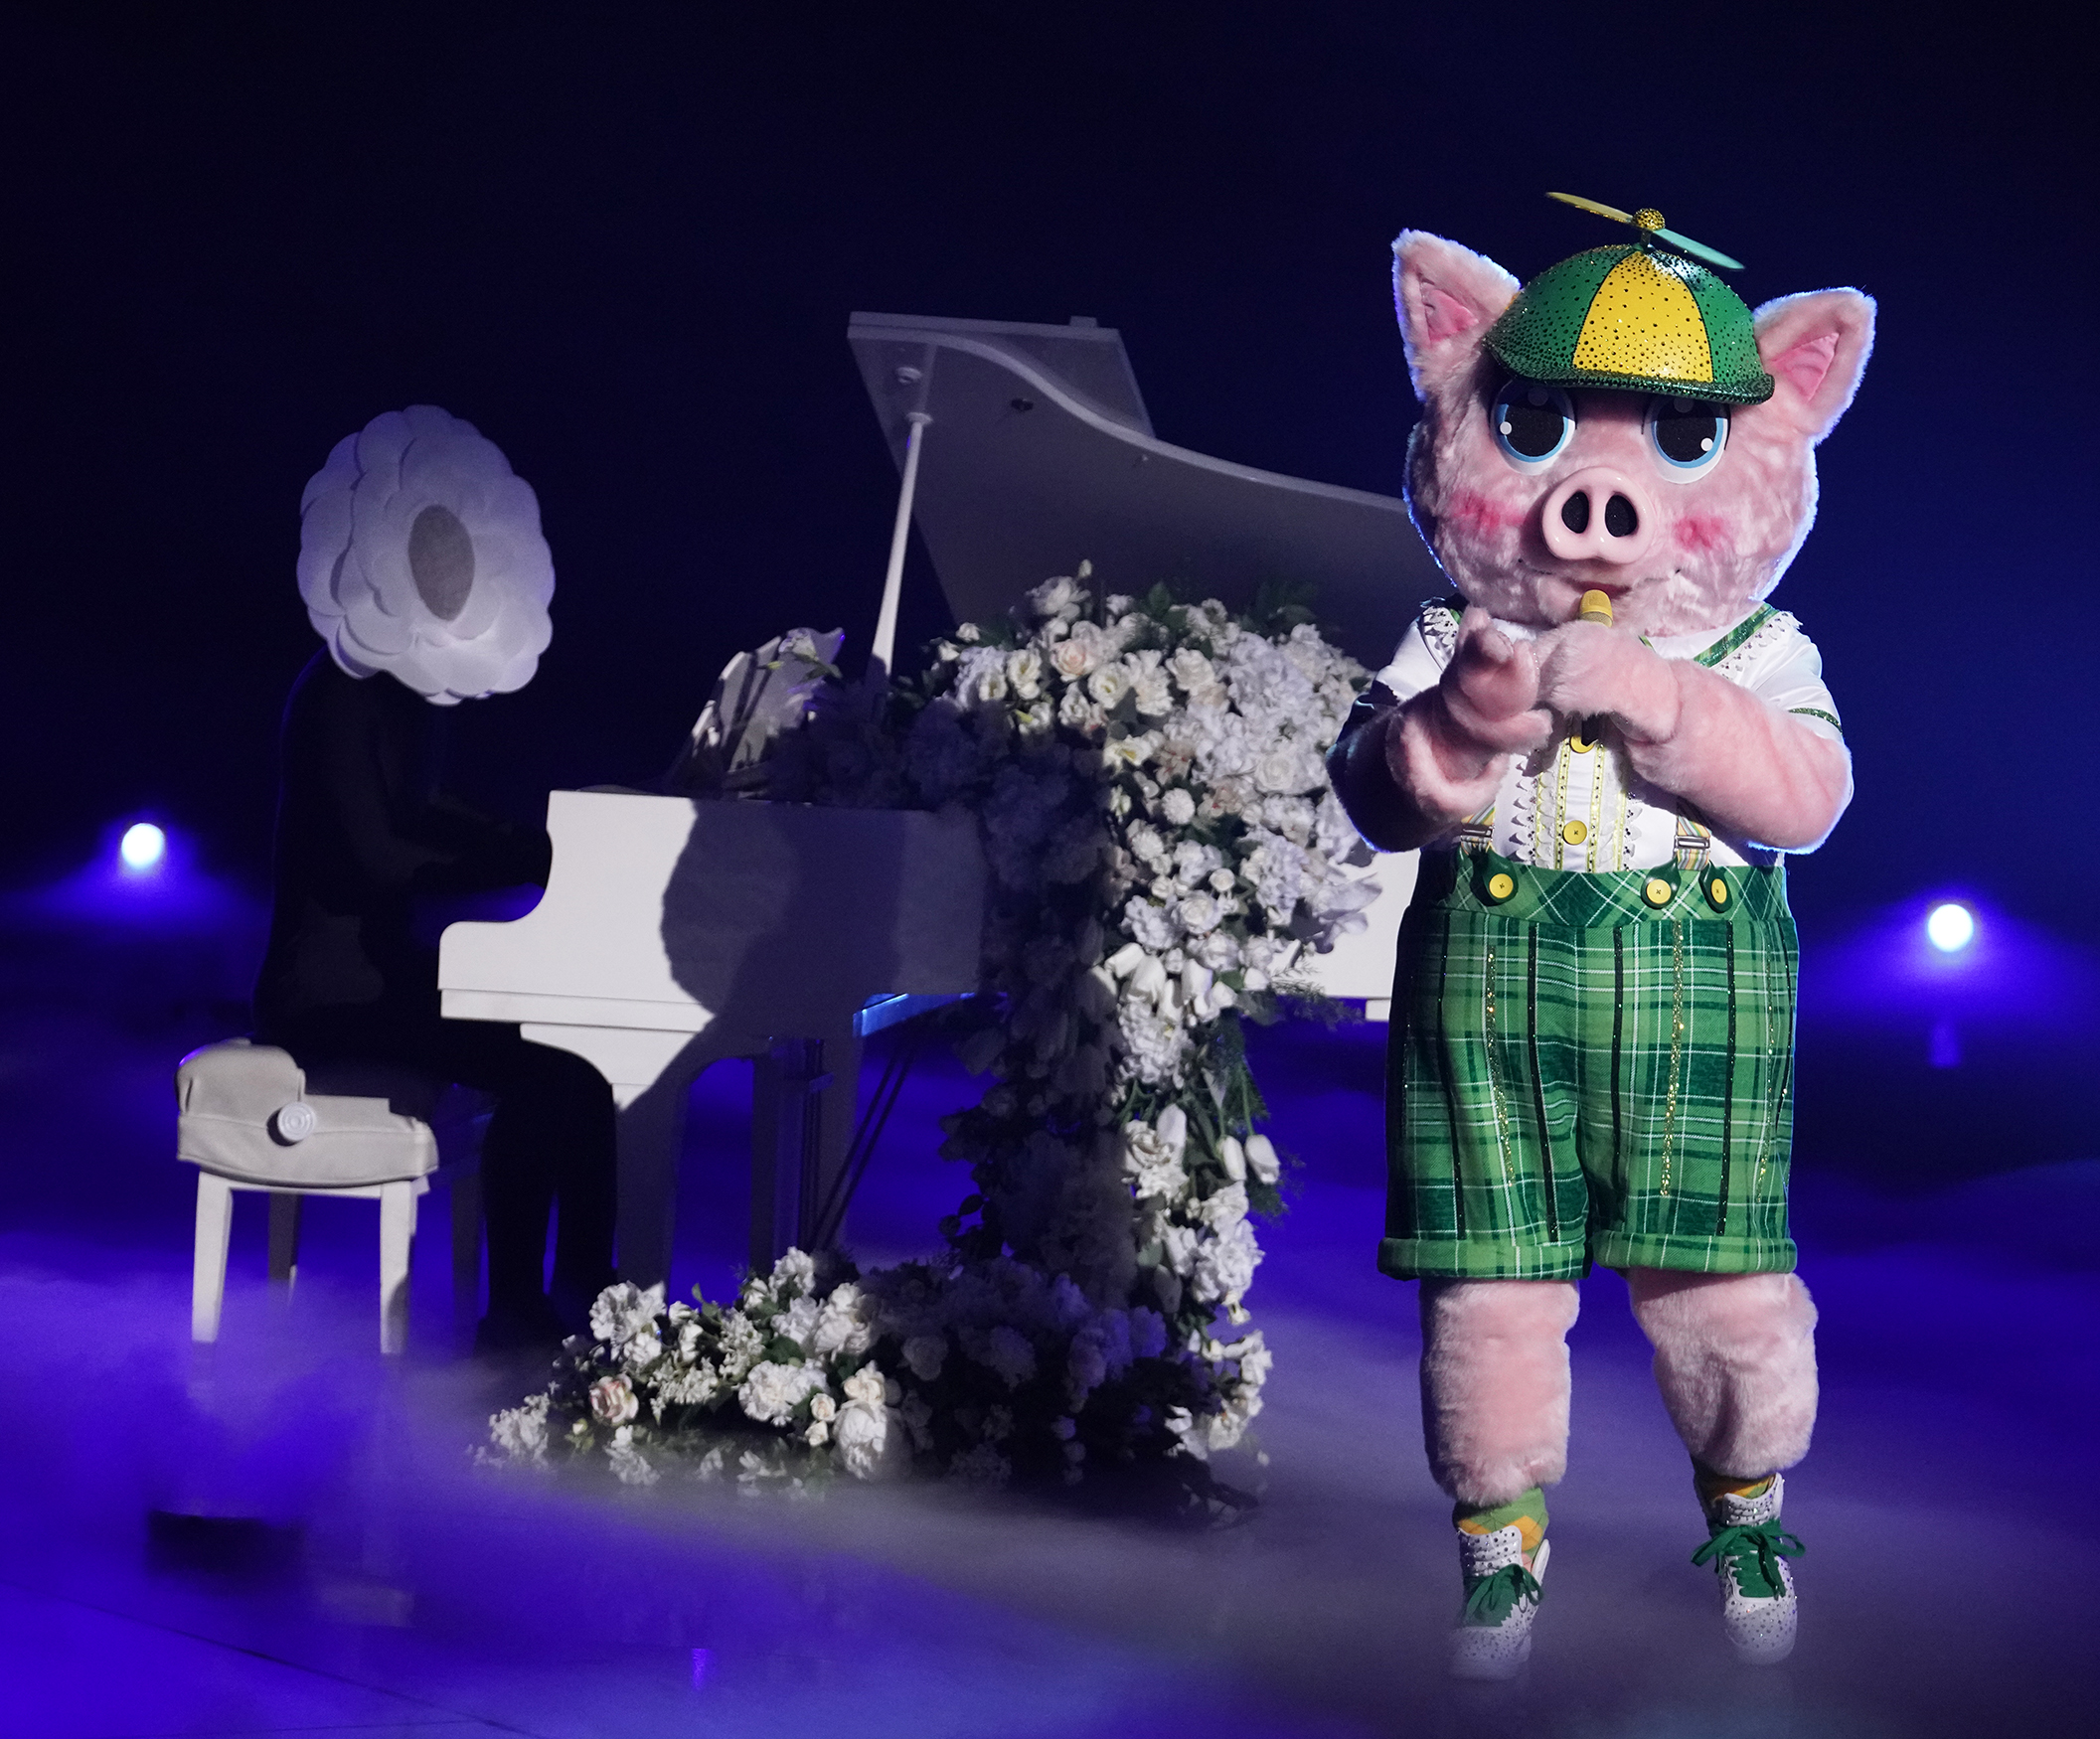 """THE MASKED SINGER: Piglet in the """"The Spicy Six - The Competition Heats Up!"""" episode of THE MASKED SINGER airing Wednesday, May 5 (8:00-9:00 PM ET/PT), © 2021 FOX MEDIA LLC. CR: Michael Becker/FOX."""